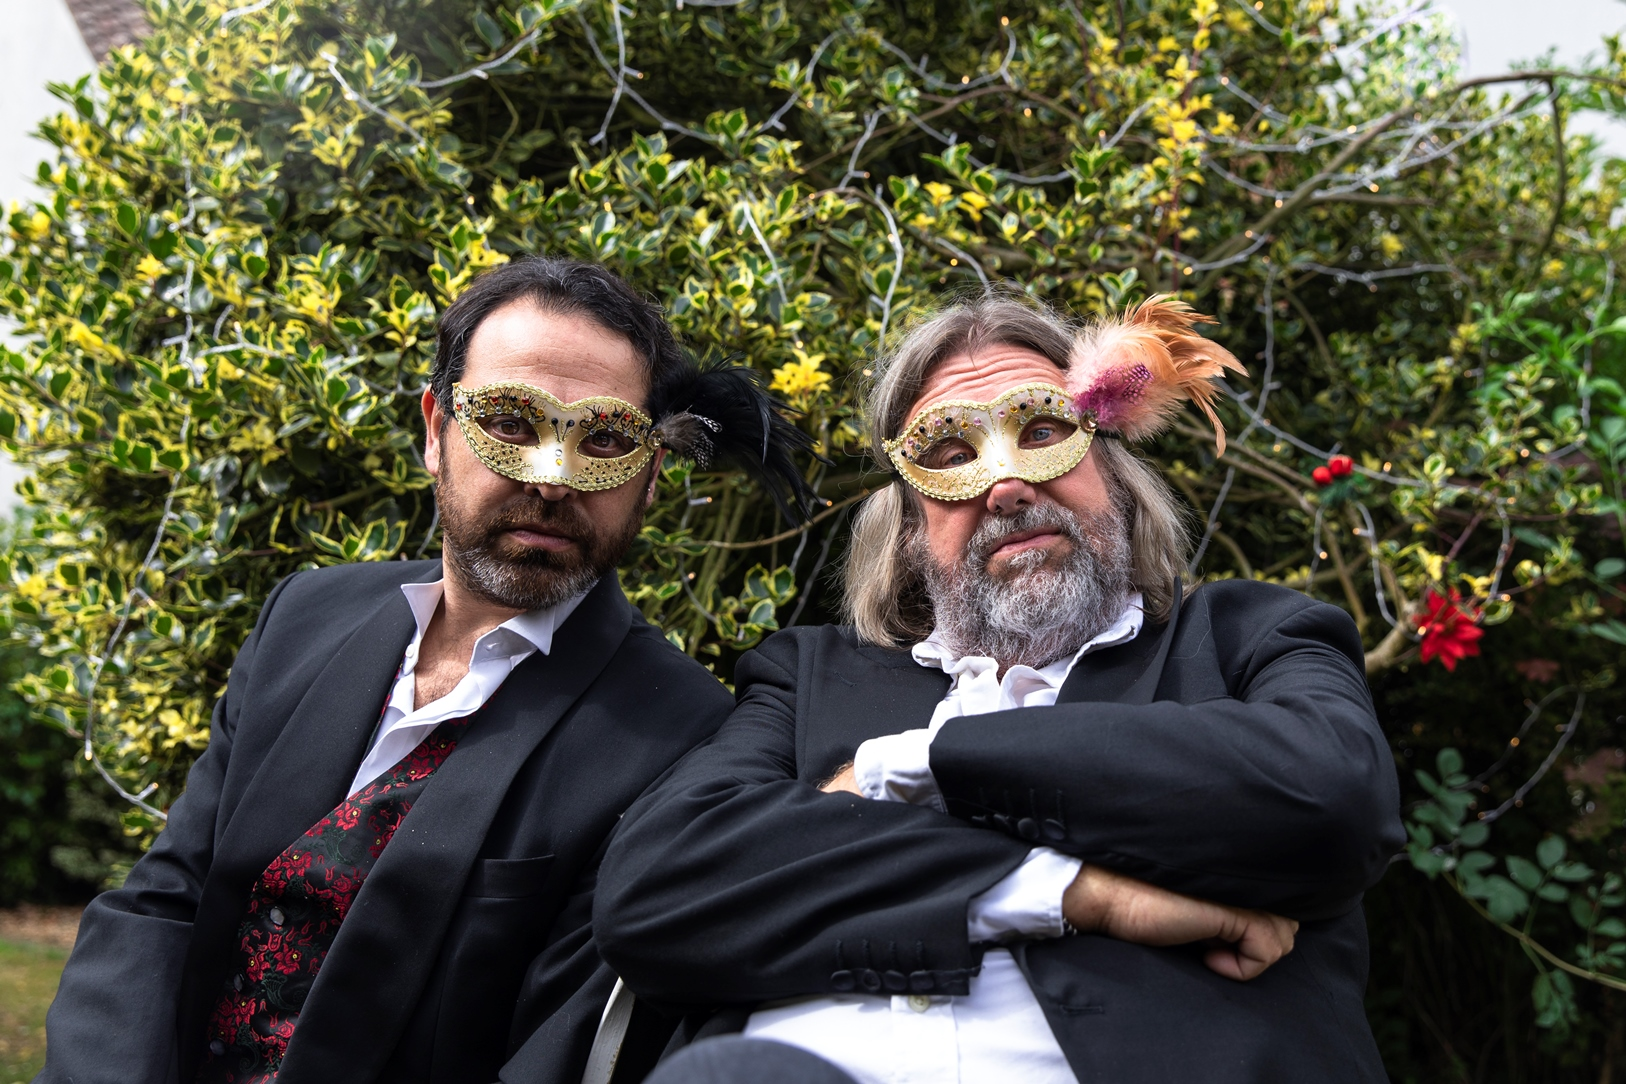 Belshazzar's Feast 'Two Wise Men' Tour at The Pound Corsham